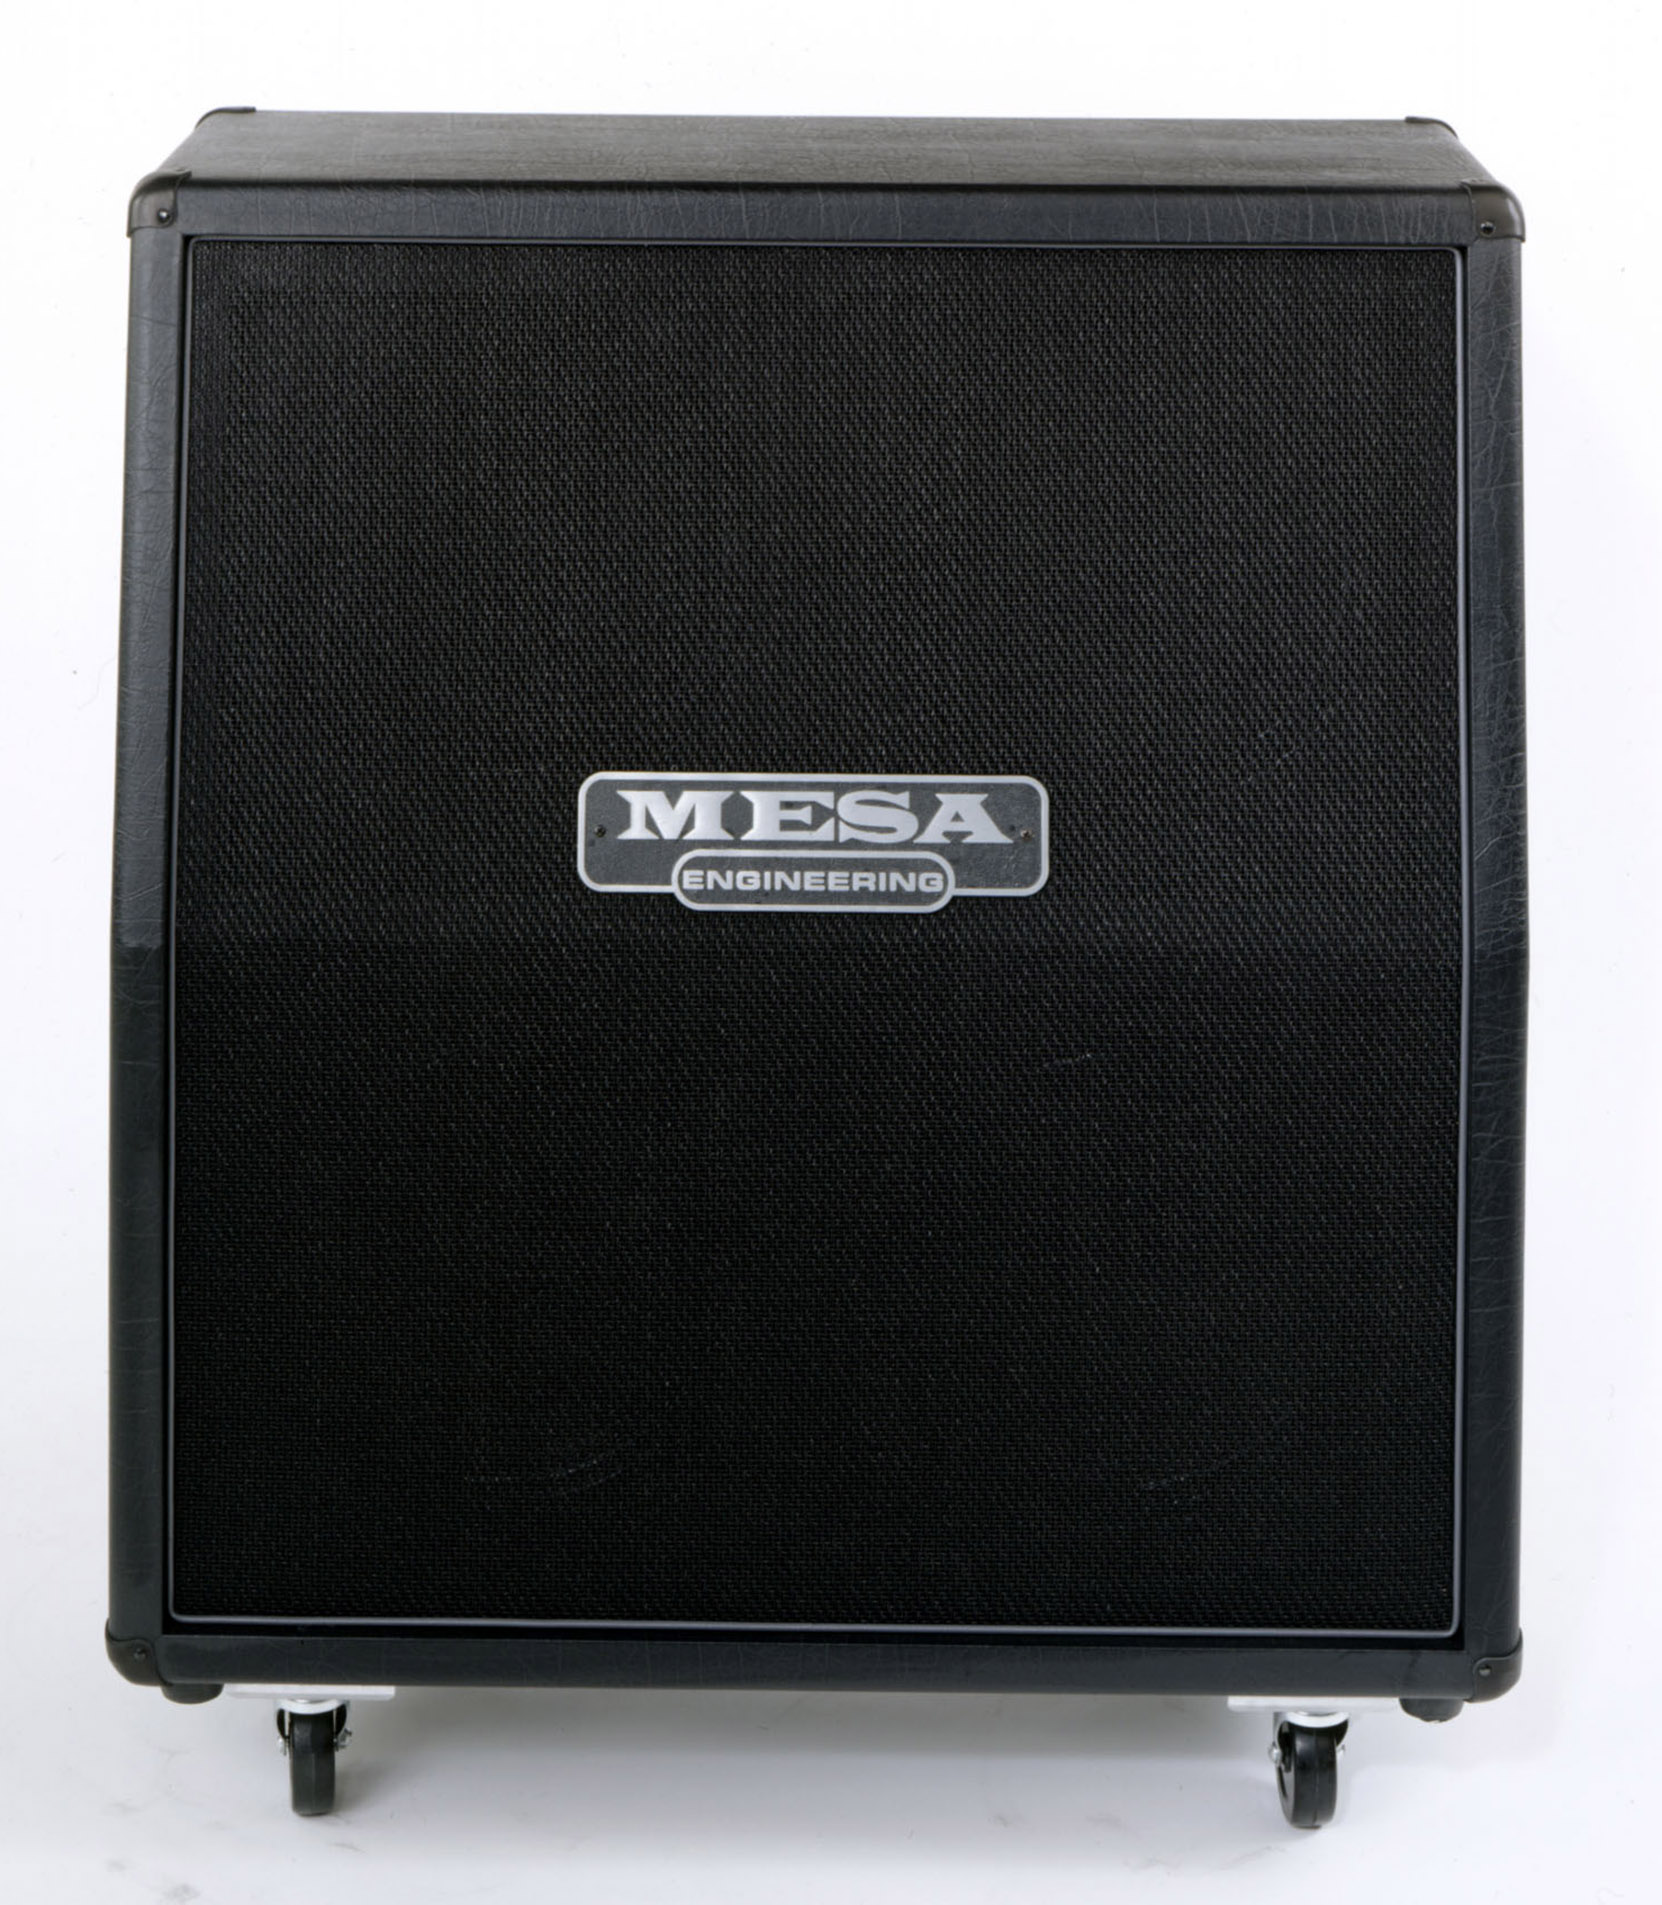 Buy mesaboogie Road King 300Watt Rectifier Slant Cabinet Melody House